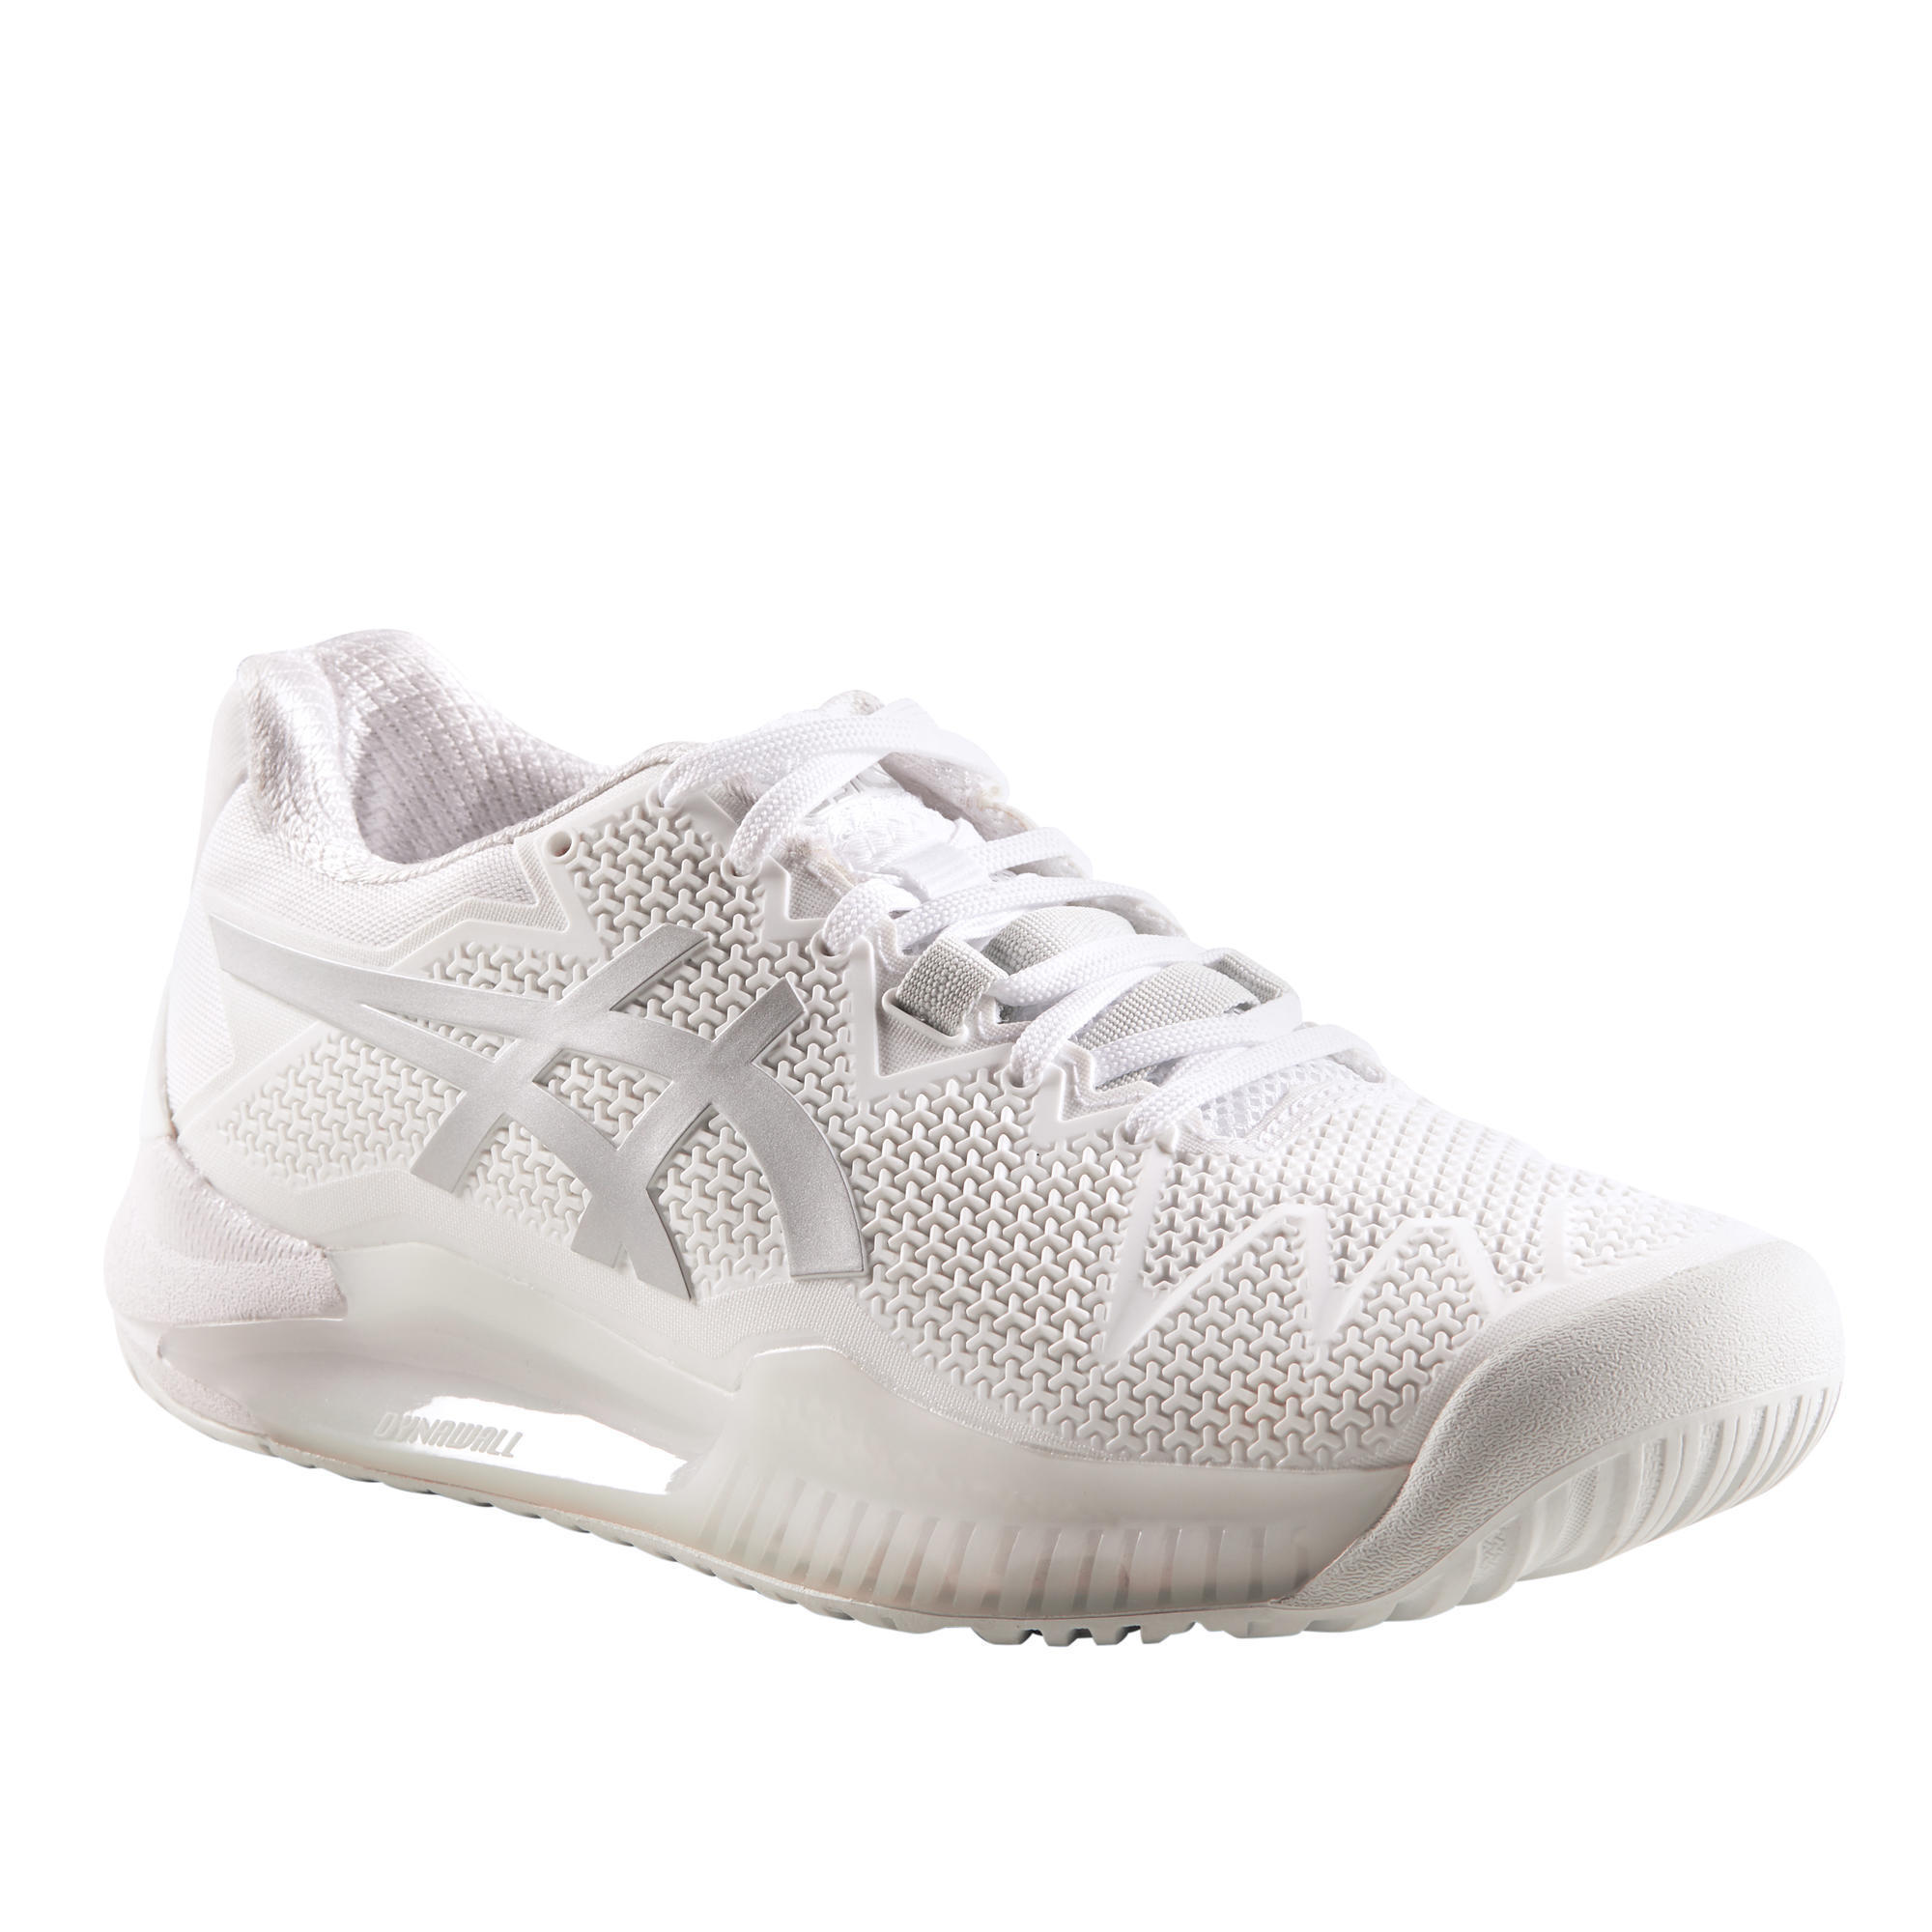 asics gel resolution 7 femme blanche